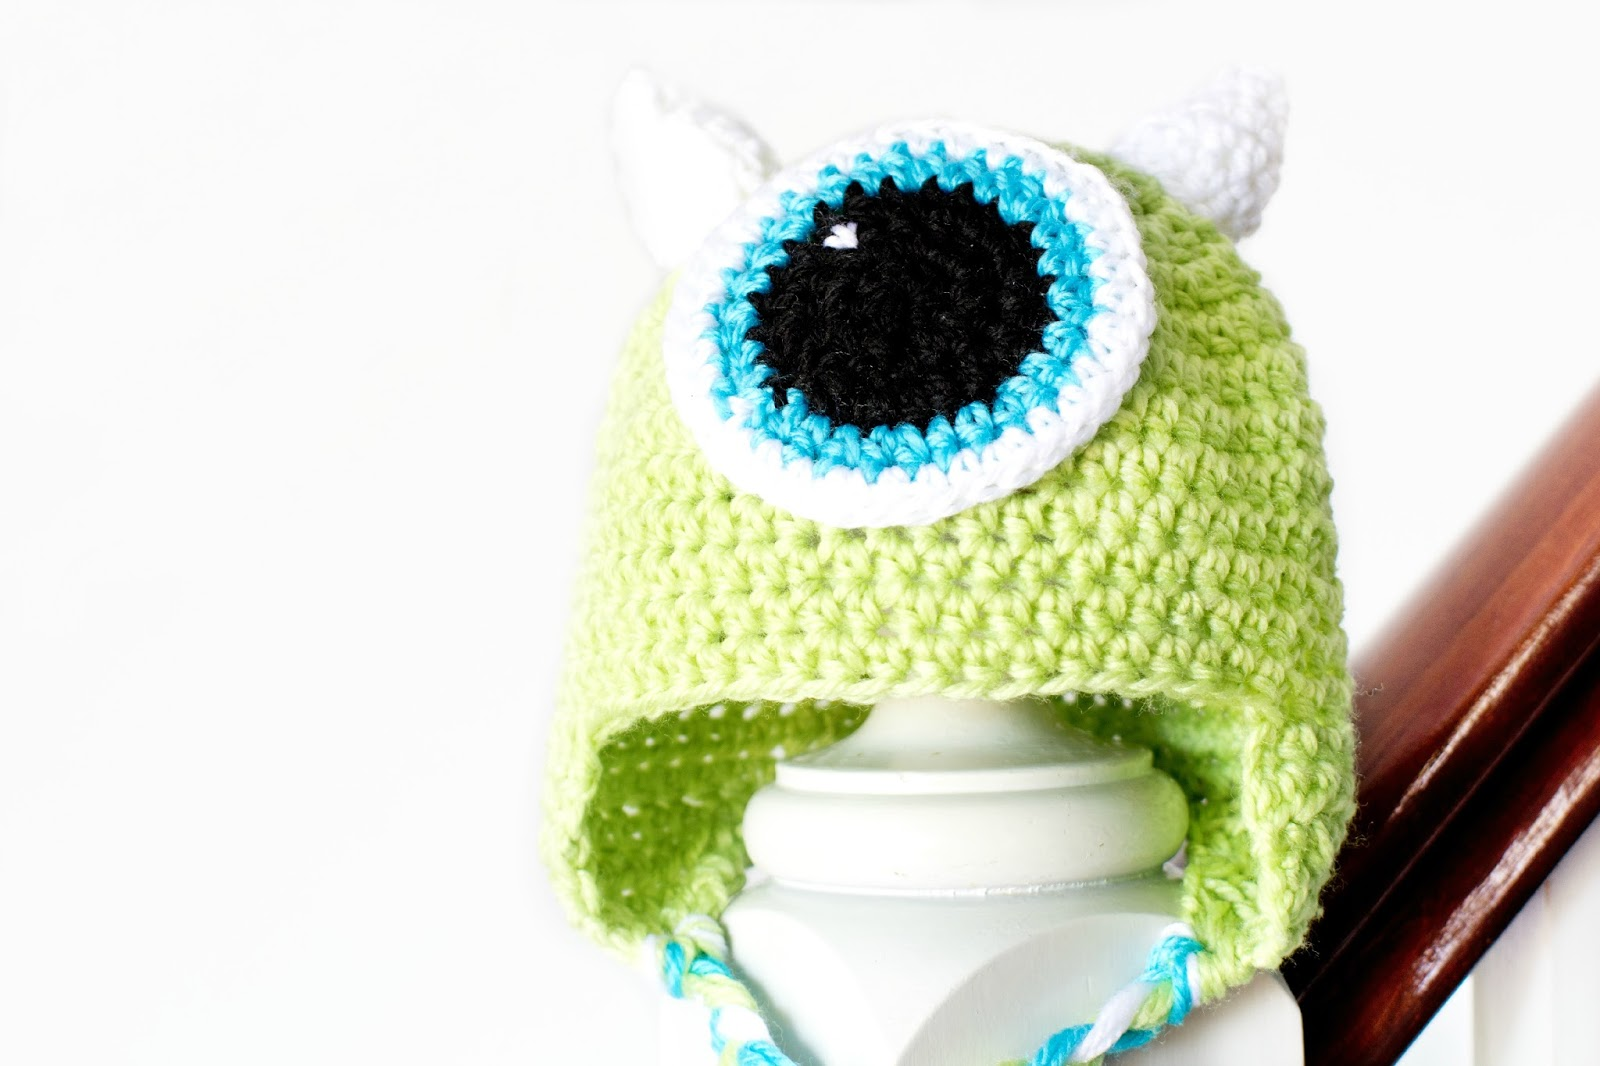 Mike Wazowski Crochet Baby Hat Pattern : Monsters Inc Mike Wazowski Baby Images & Pictures - Becuo